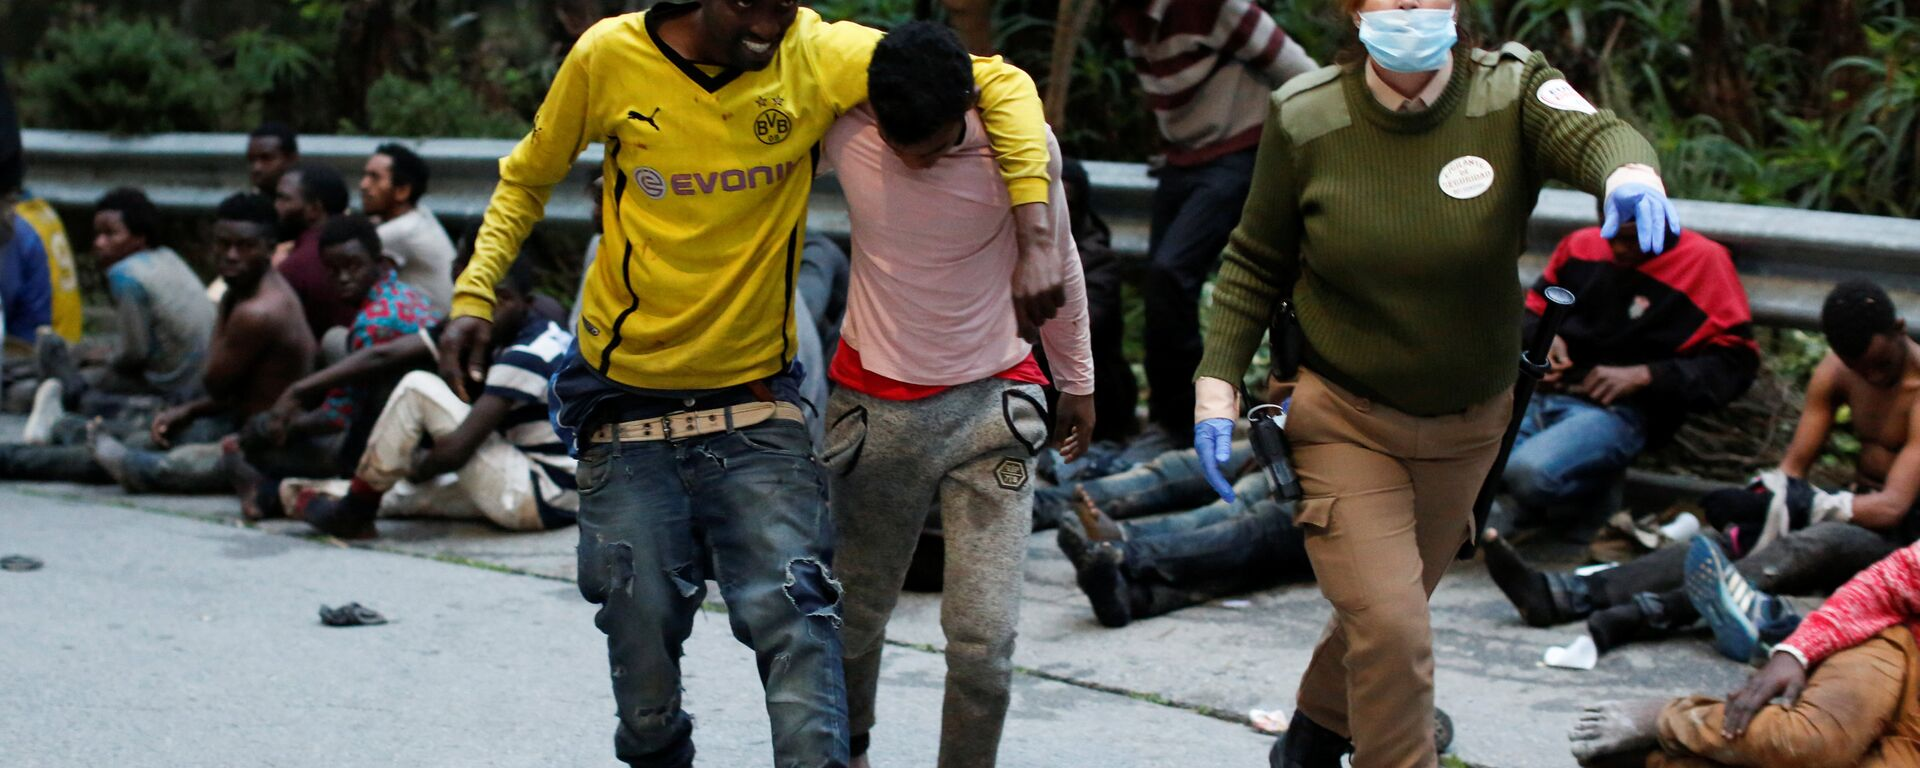 African migrants help each other as they arrive at the CETI, the short-stay immigrant centre, after crossing the border from Morocco to Spain's North African enclave of Ceuta, Spain, February 17, 2017 - Sputnik Italia, 1920, 20.05.2021